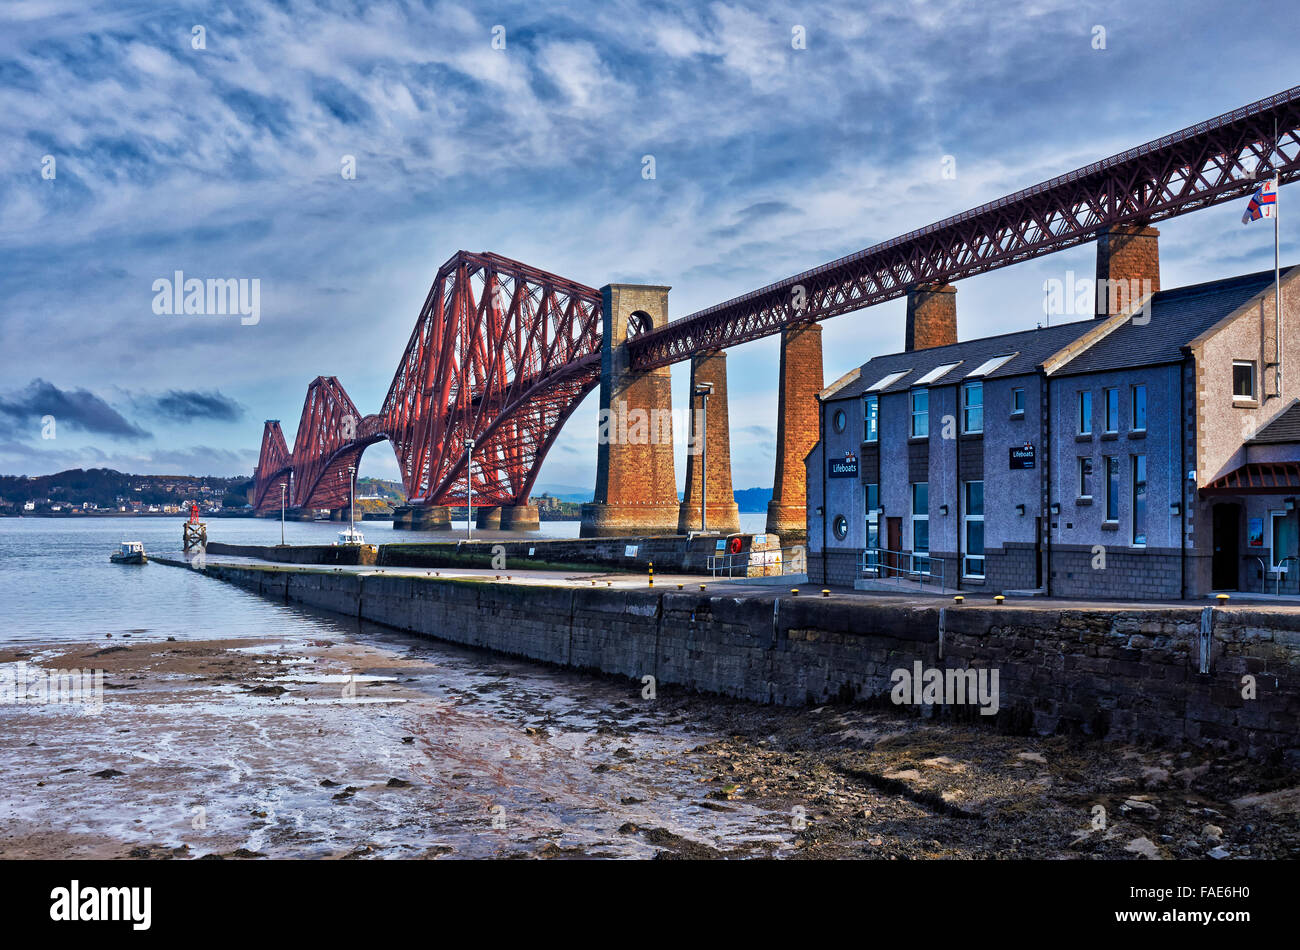 Forth Bridge is a cantilever railway bridge over the Firth of Forth, UNESCO World Heritage Site,  South Queensferry, - Stock Image